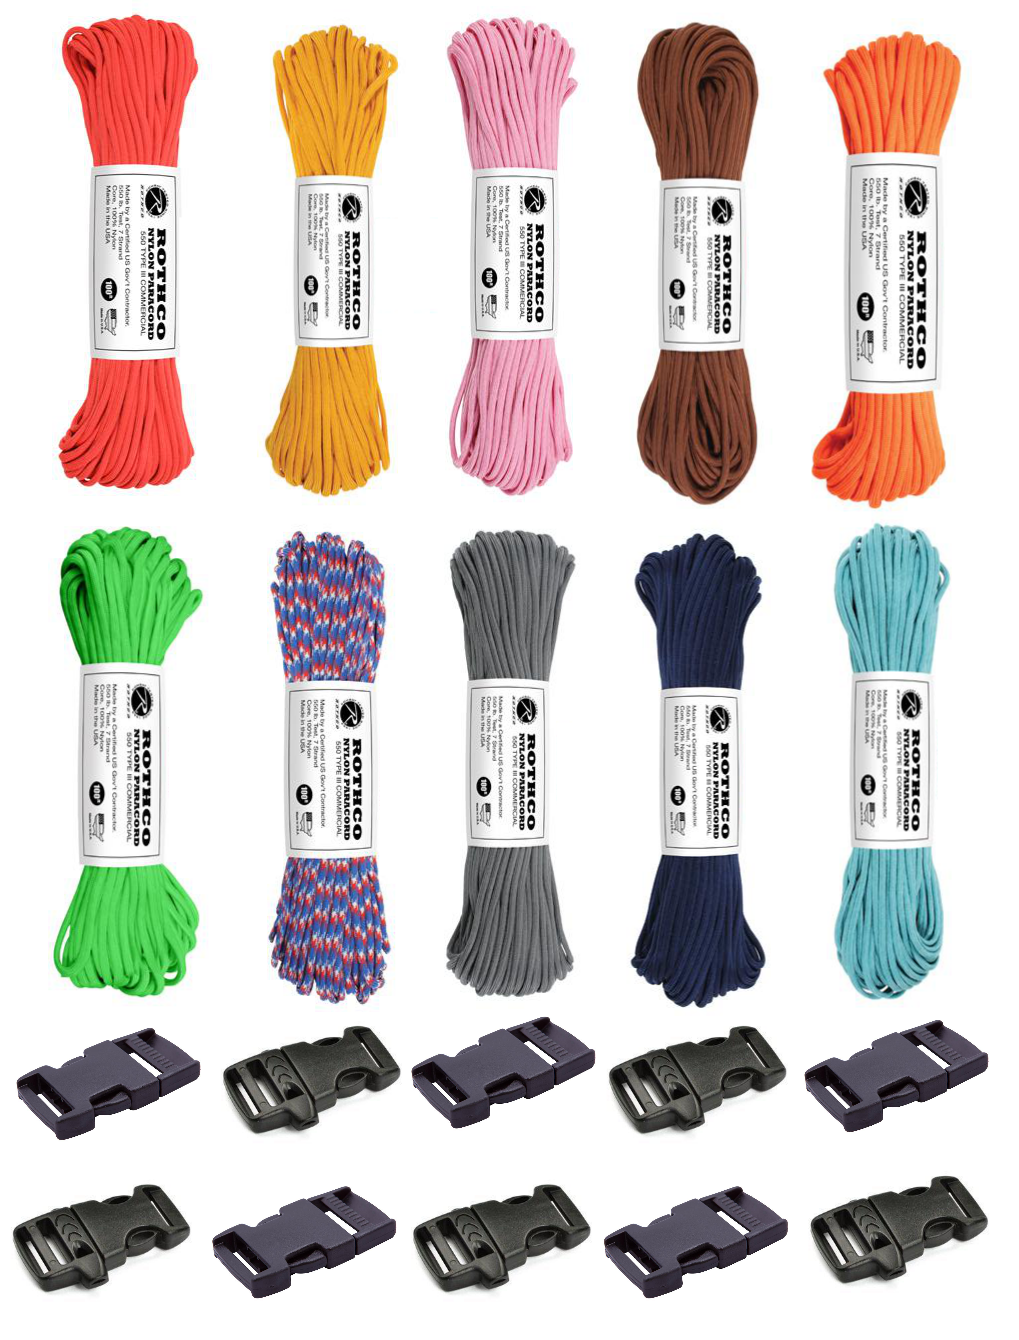 Paracord Kits